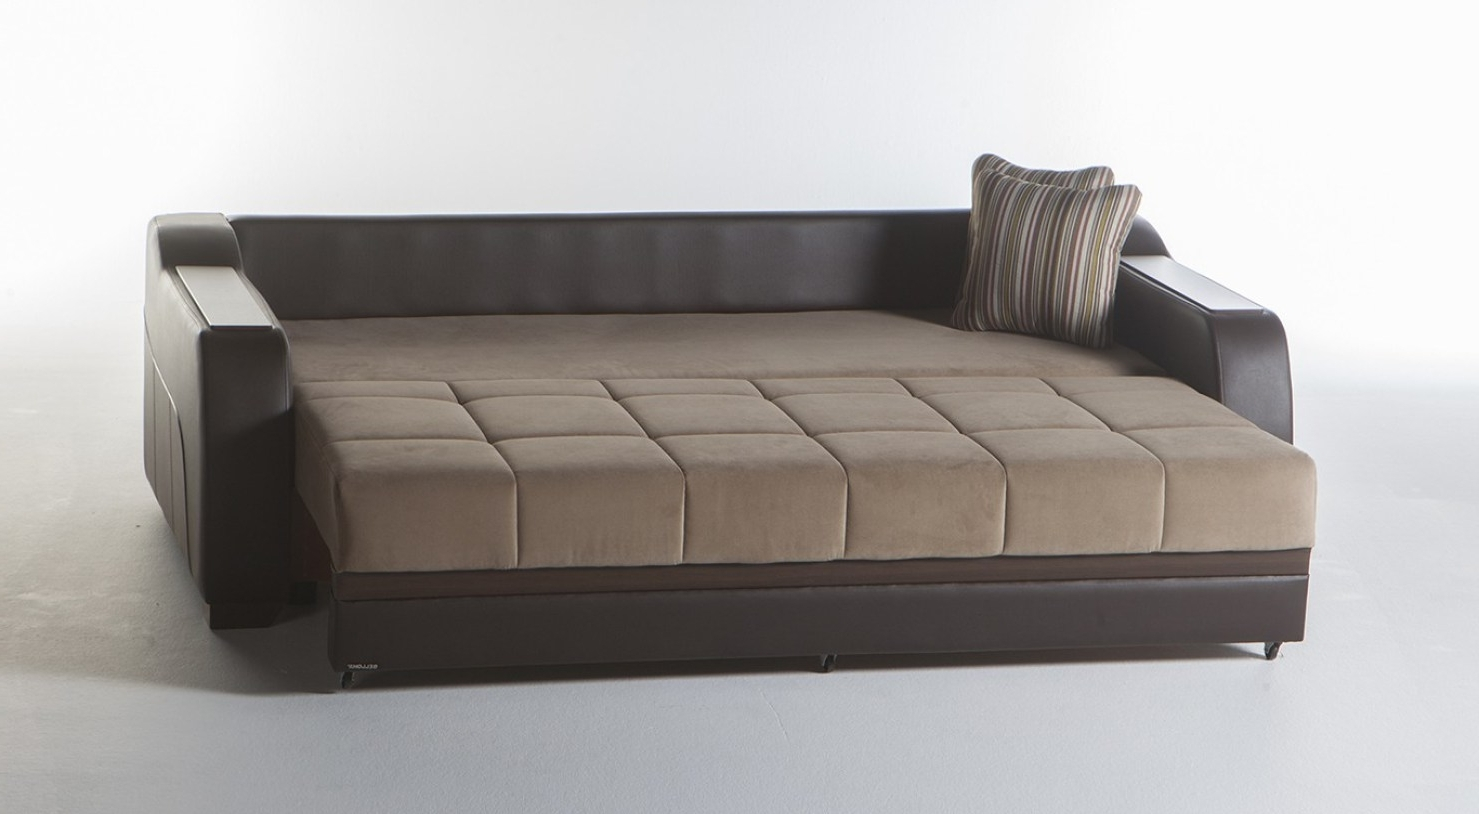 Catosfera Regarding Philippines Sectional Sofas (View 1 of 20)